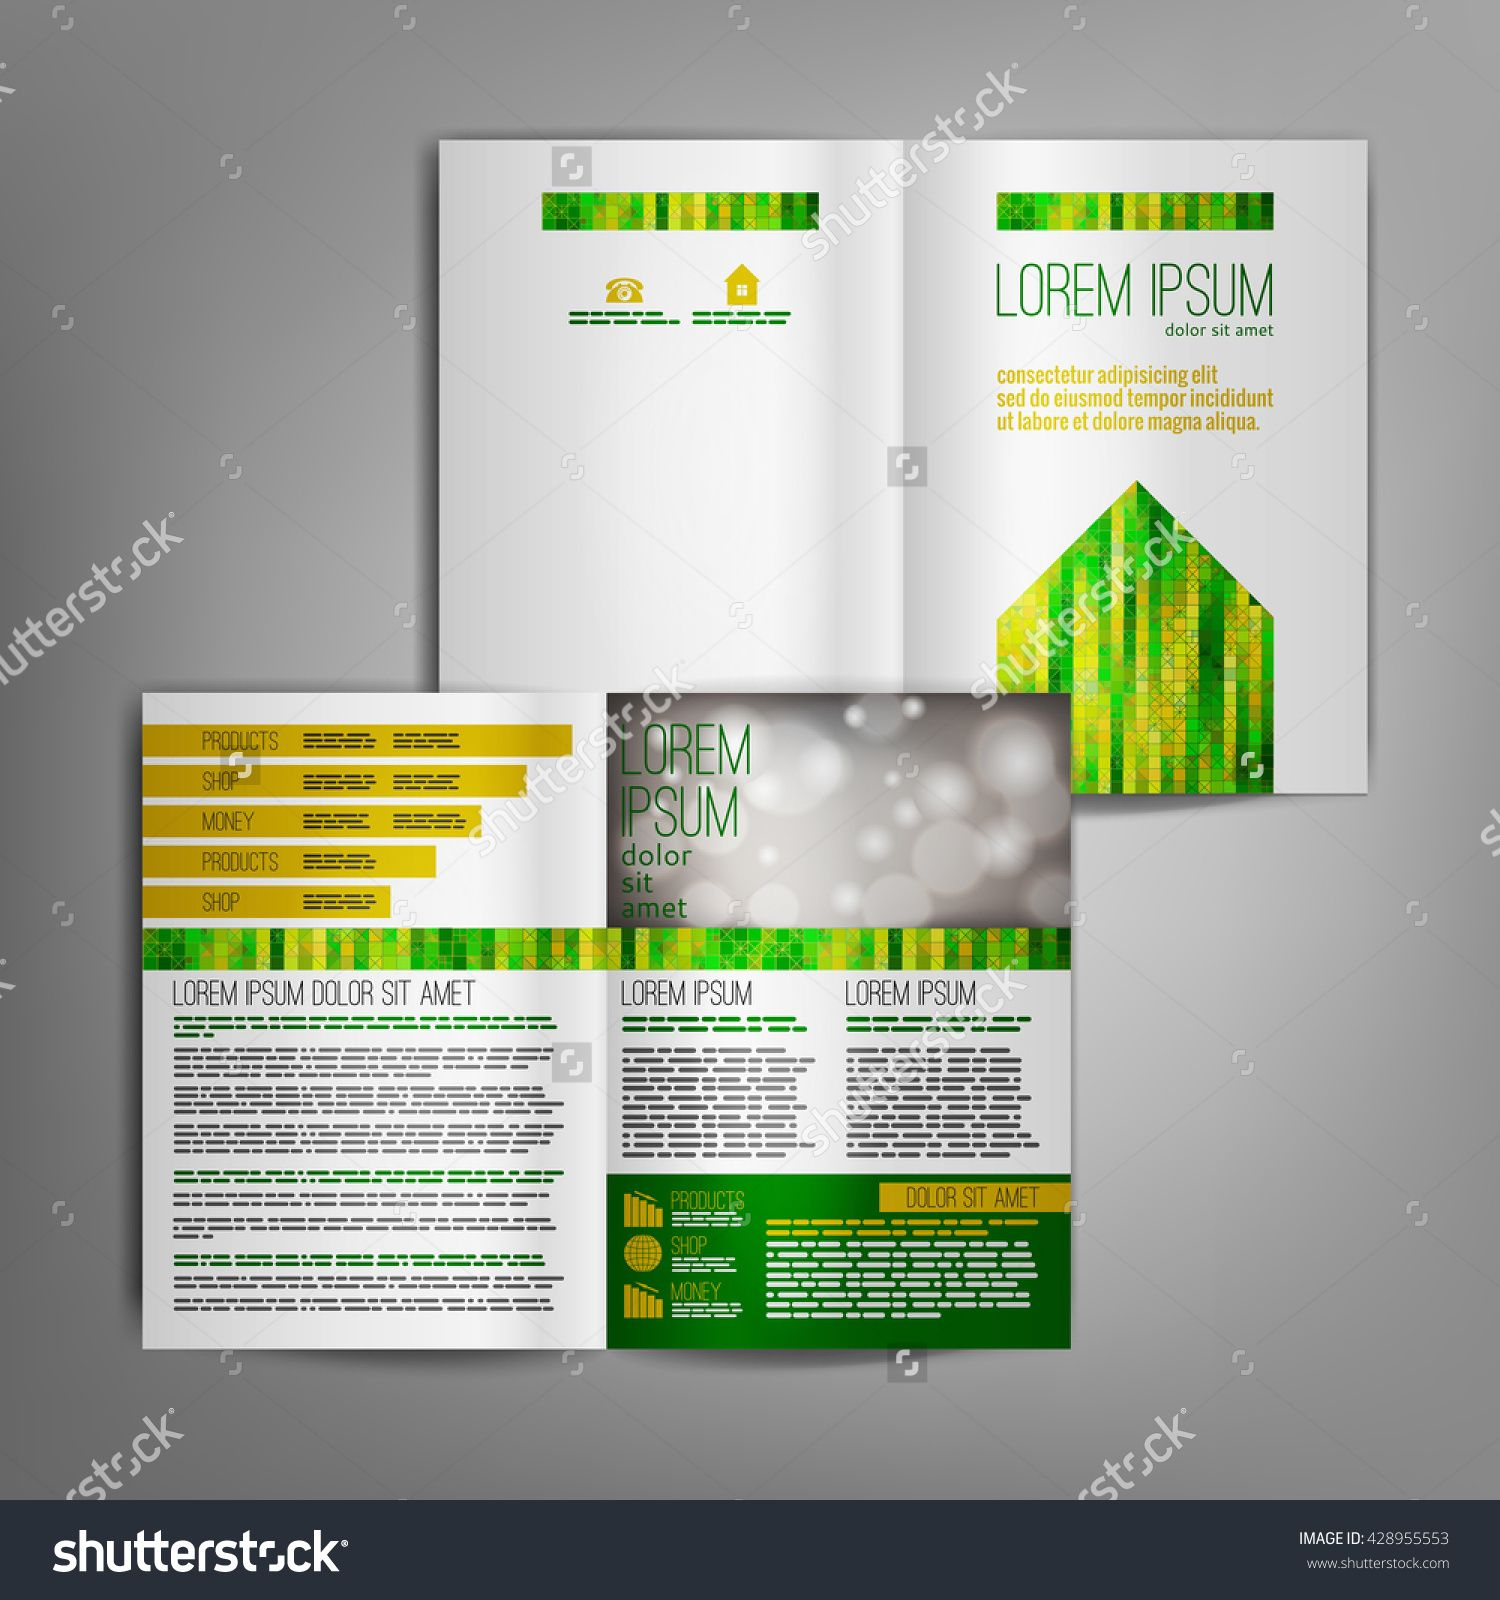 Elements of a poster design - White Business Brochure Design Template With Green And Yellow Arrow Elements Vector Flyer Layout